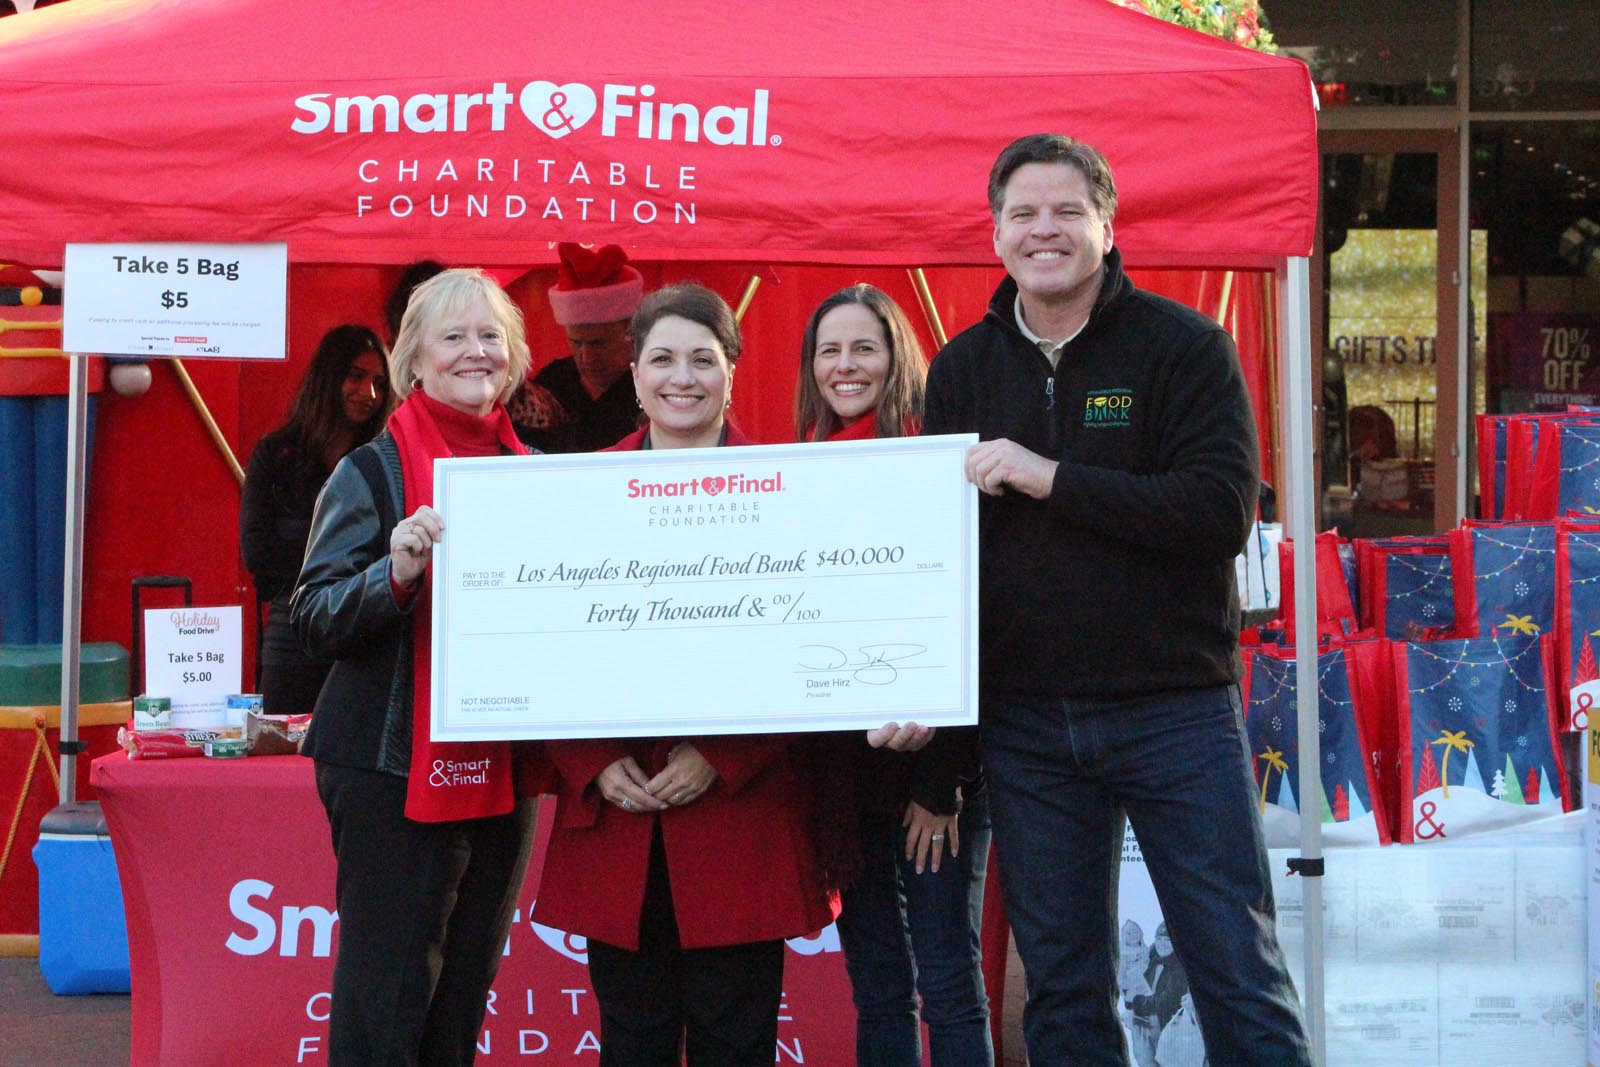 Enterprise Rent A Car Smart Final Norms And More Donate At